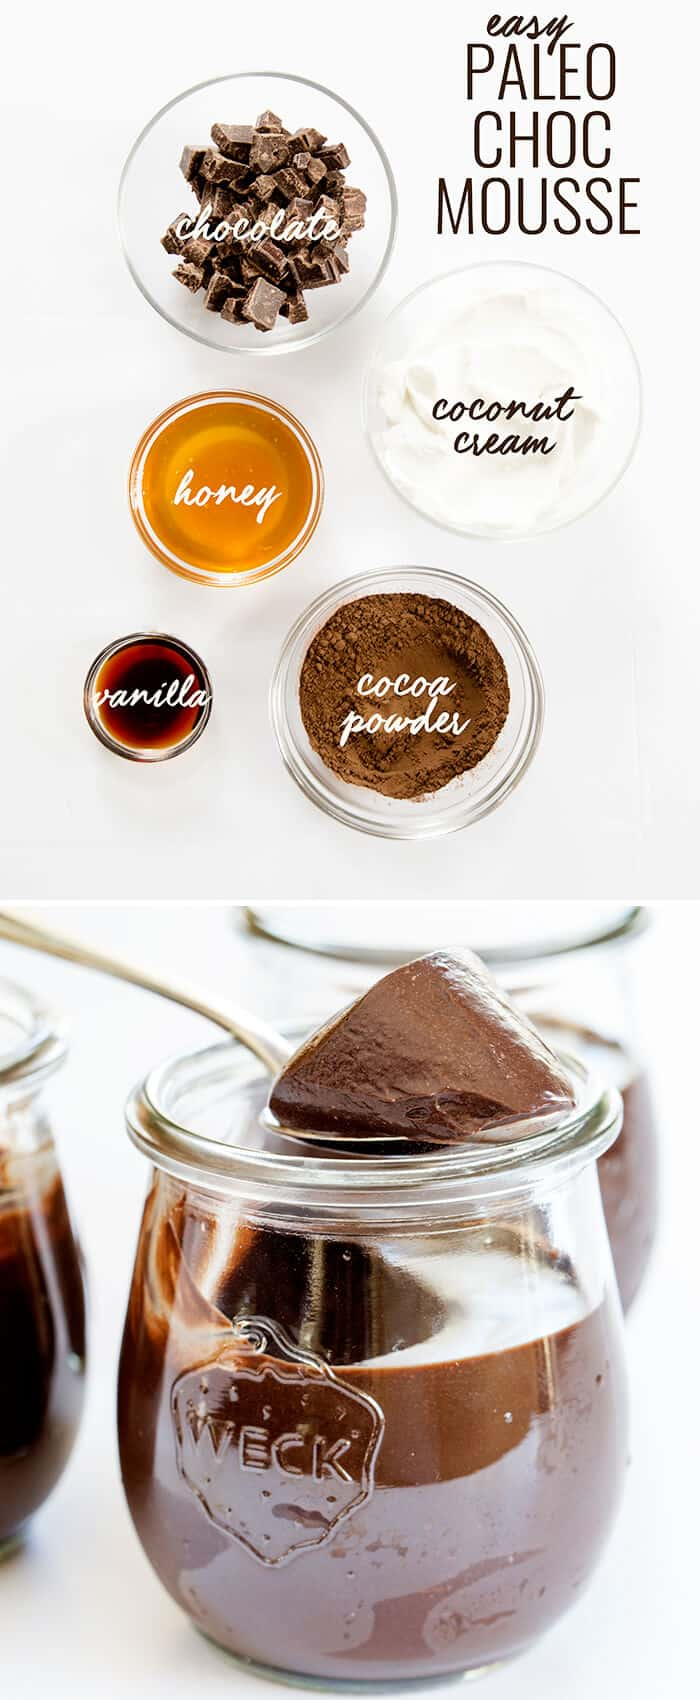 Overhead view of cocoa powder vanilla and honey in separate bowls and chocolate mousse in a jar being scooped out below